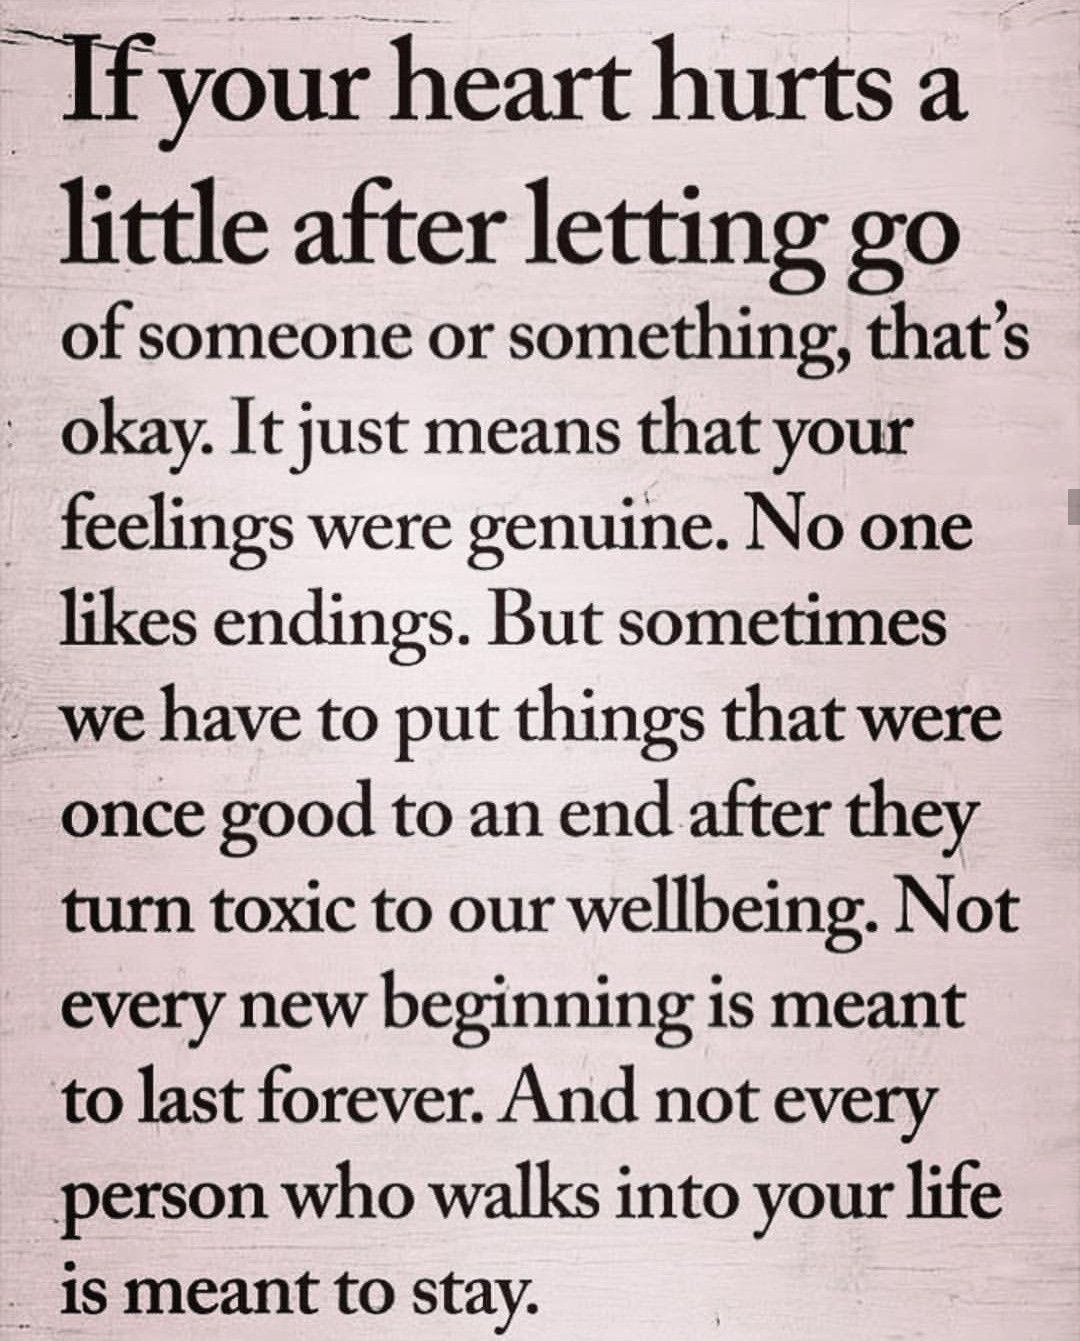 If your heart hurts after letting go     this is a wonderful